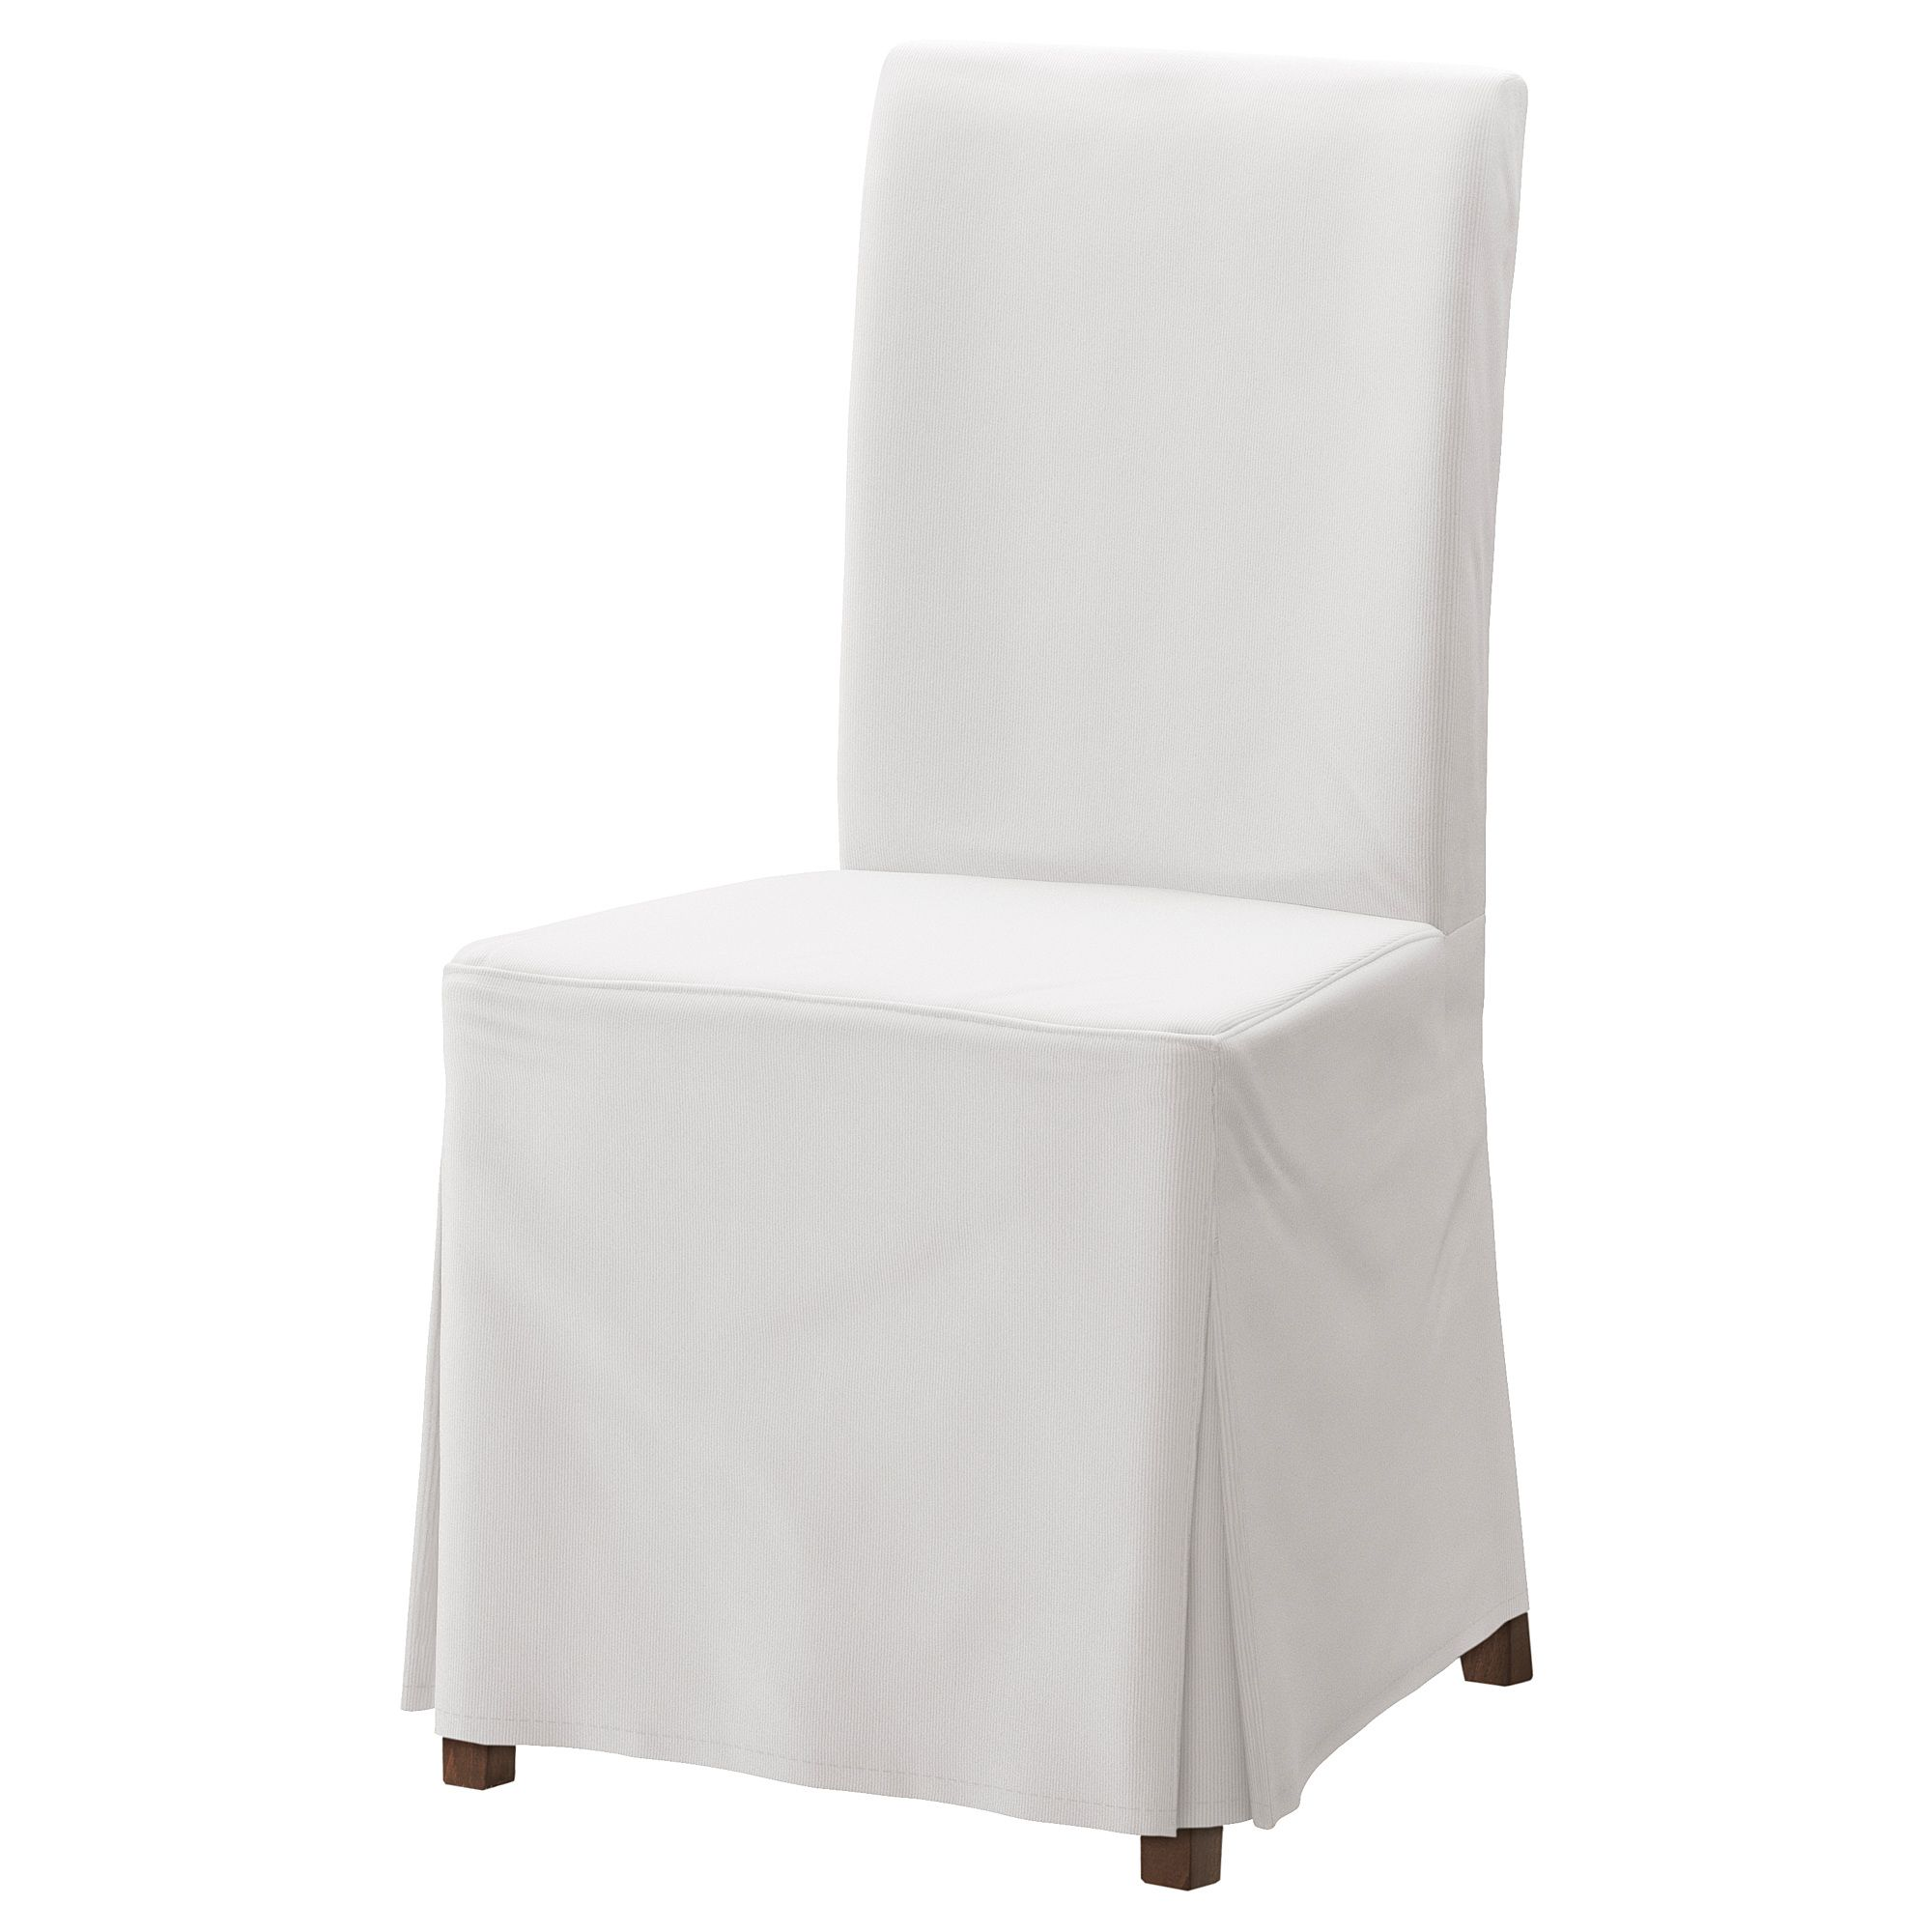 IKEA HENRIKSDAL Chair with long cover brown, Blekinge